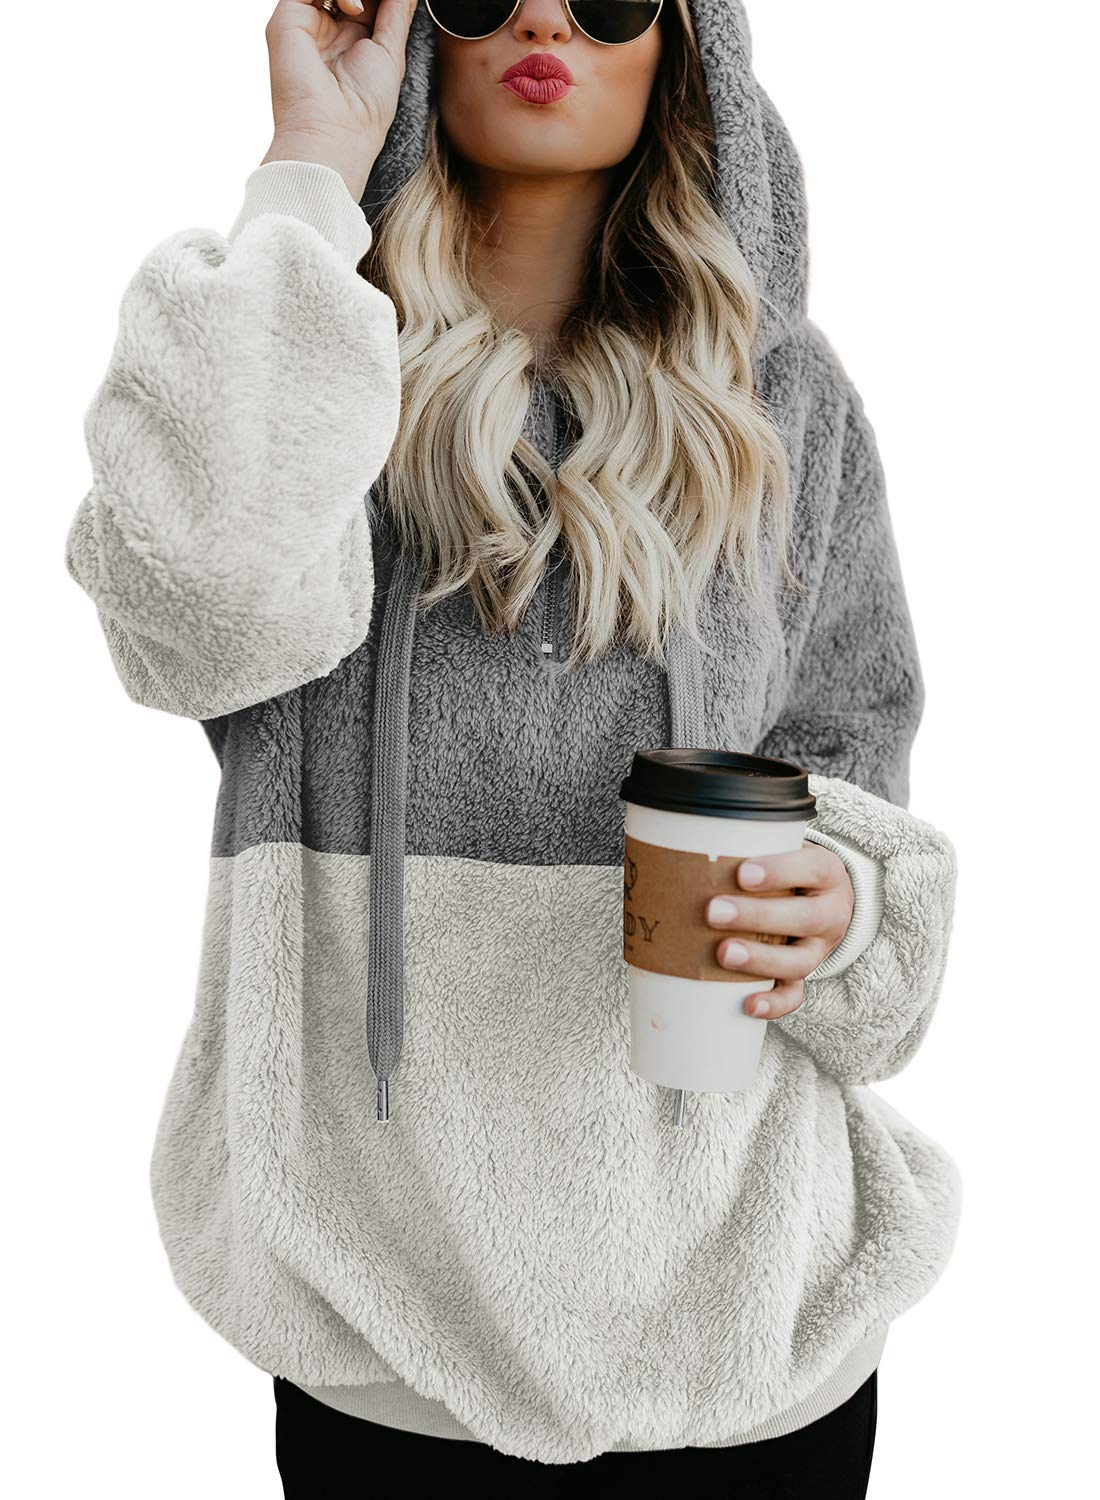 Acelitt Women Plus Size Cozy Thick Fuzzy Sweatshirt Casual Loose Sweatshirt Hoodies Fleece Pullover with Pockets Grey White XX-Large XXL